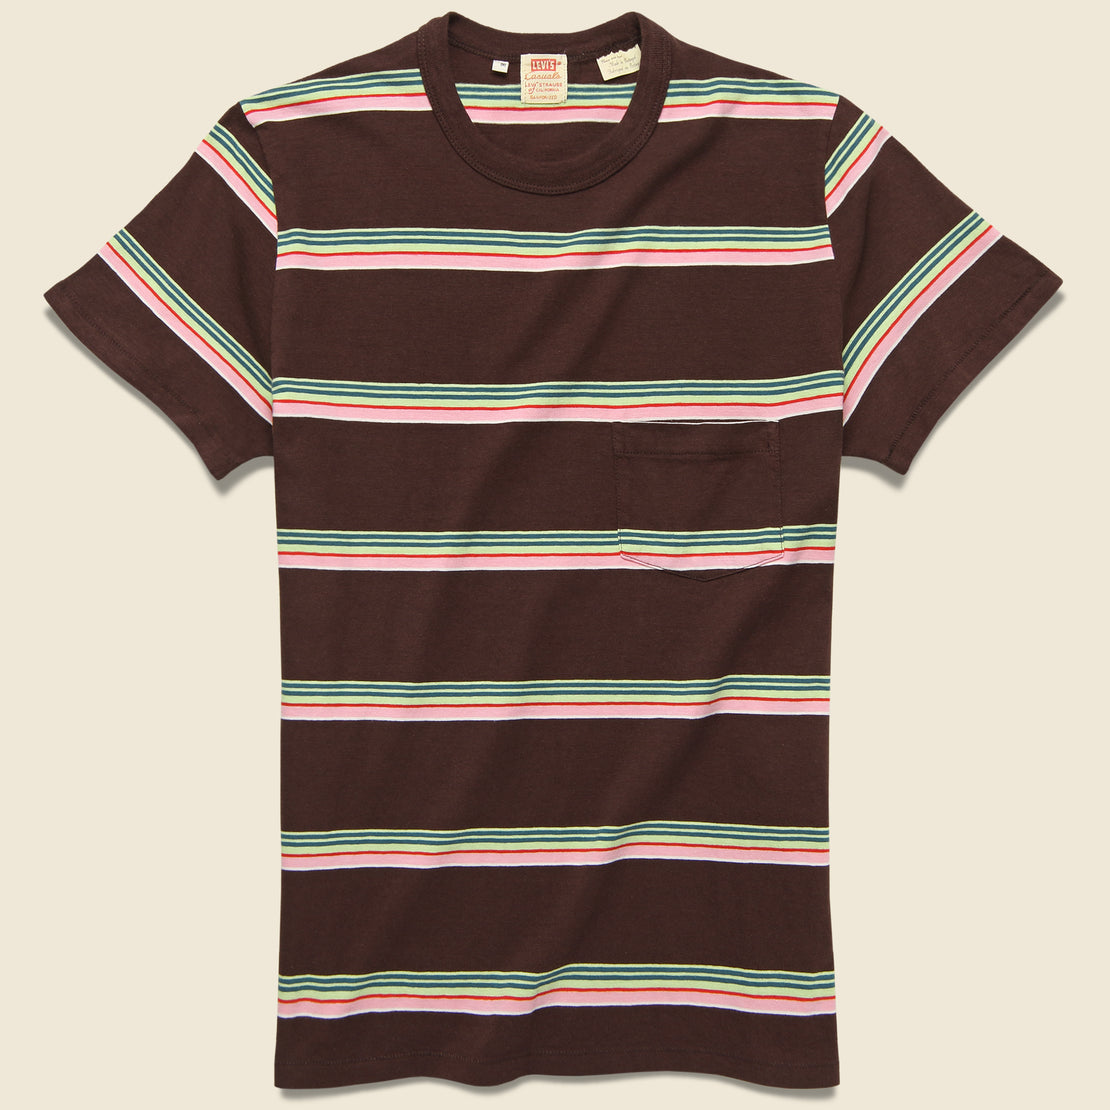 Levis Vintage Clothing 1960s Casual Stripe Tee - Brown